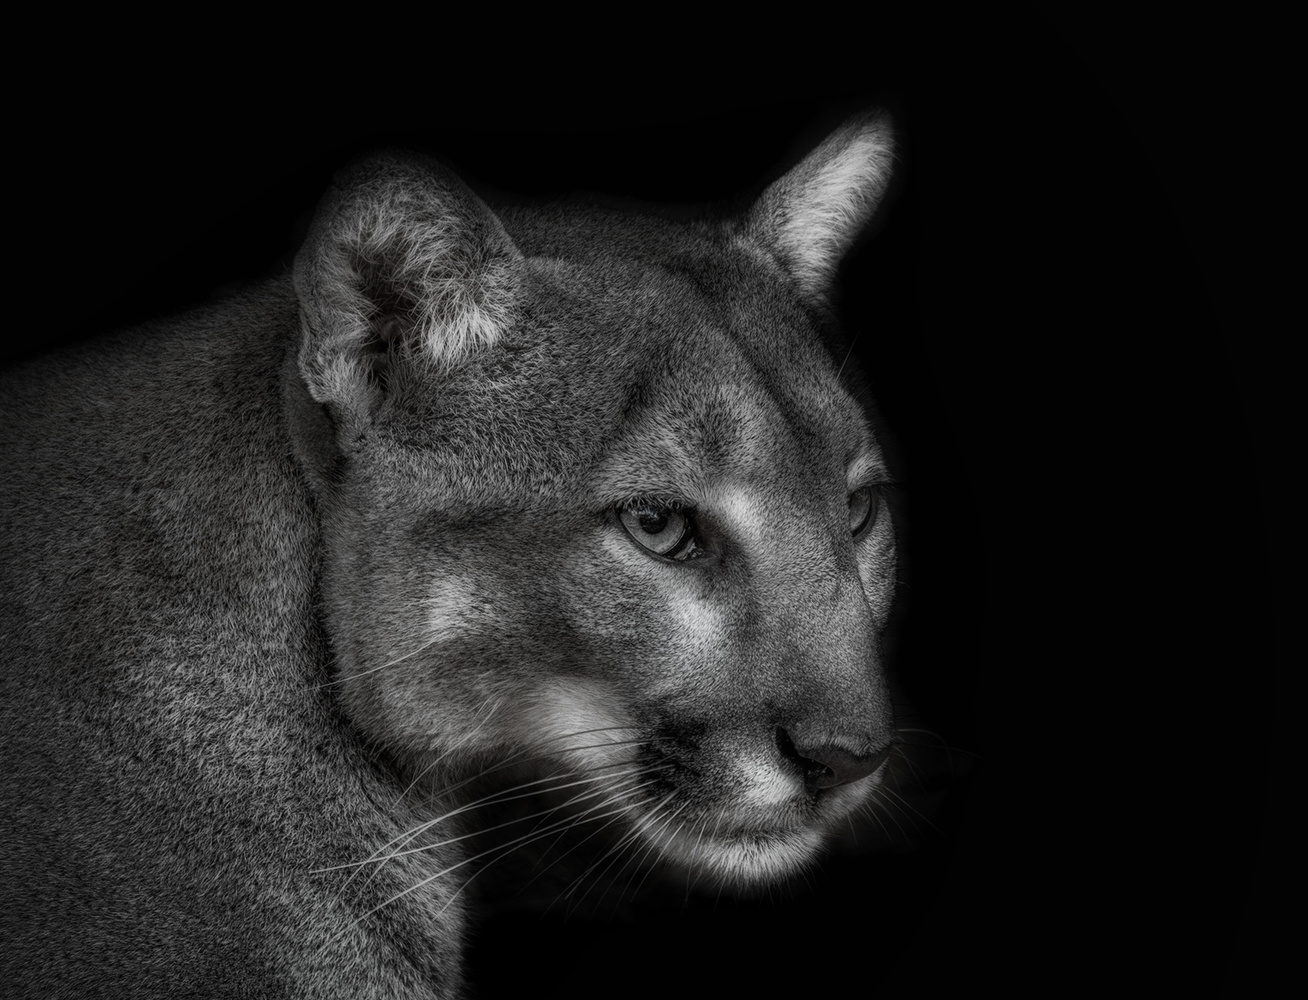 Cougar by David Boardman